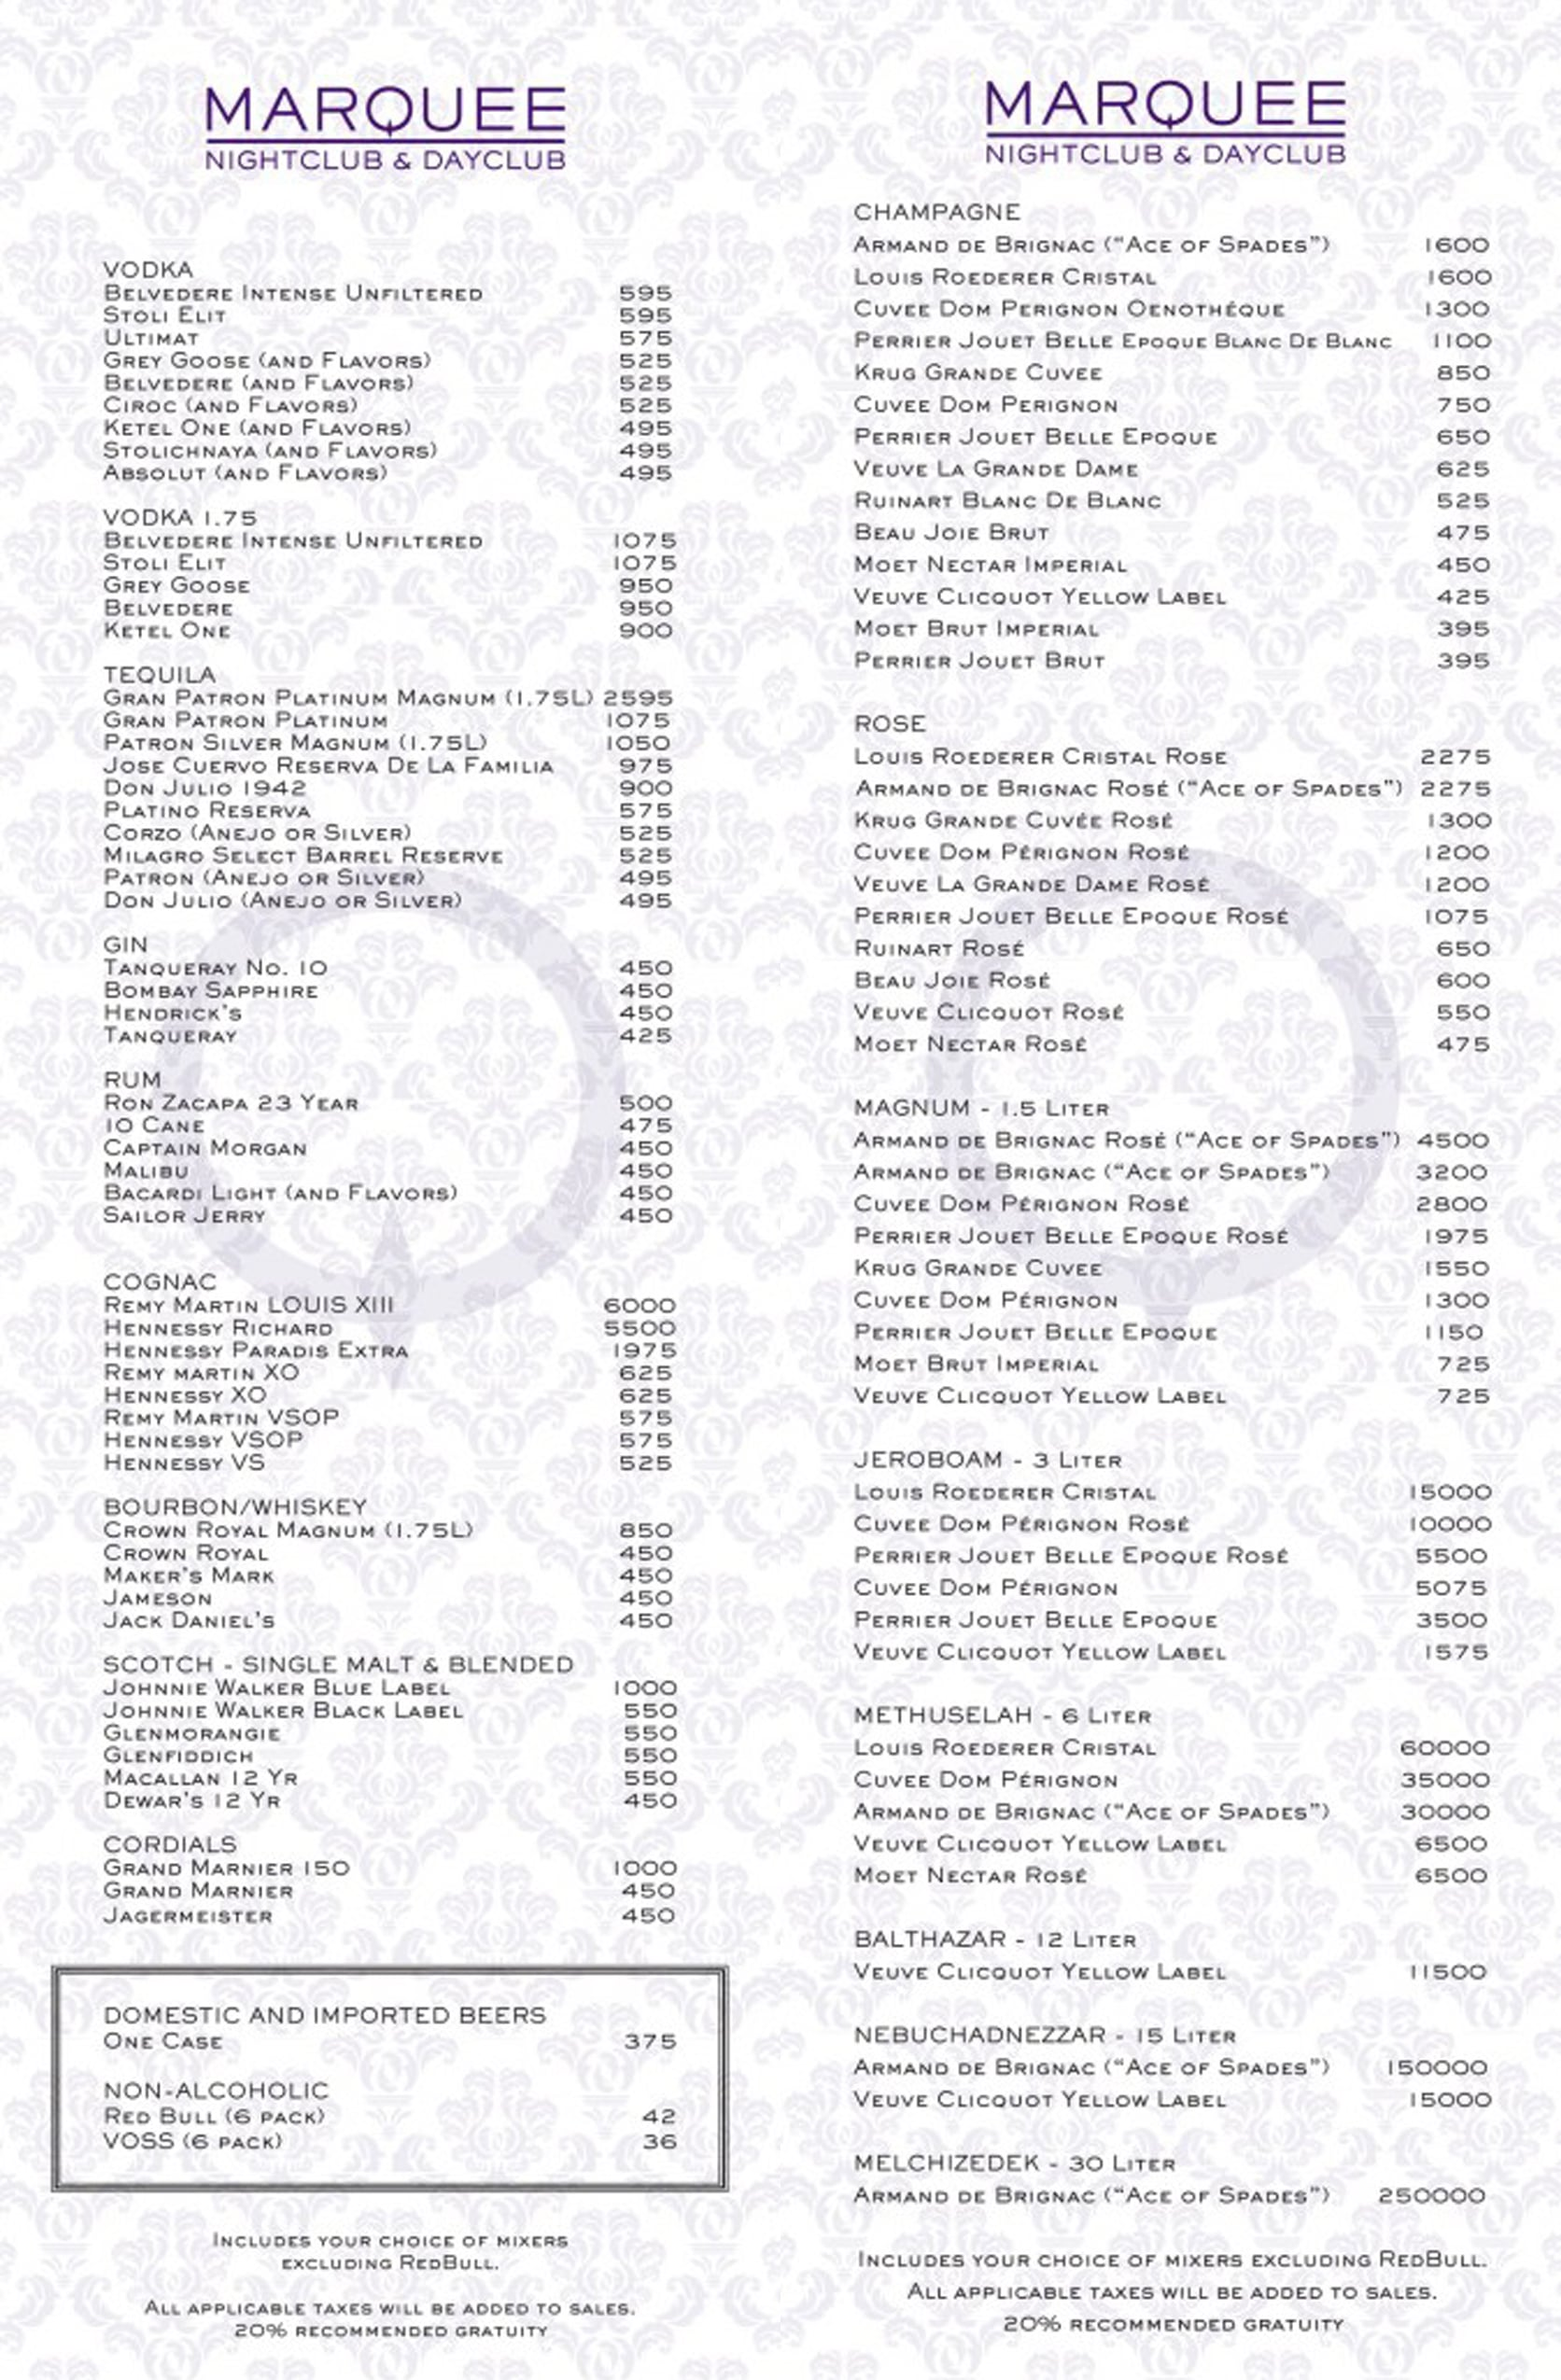 Marquee Nightclub Menu